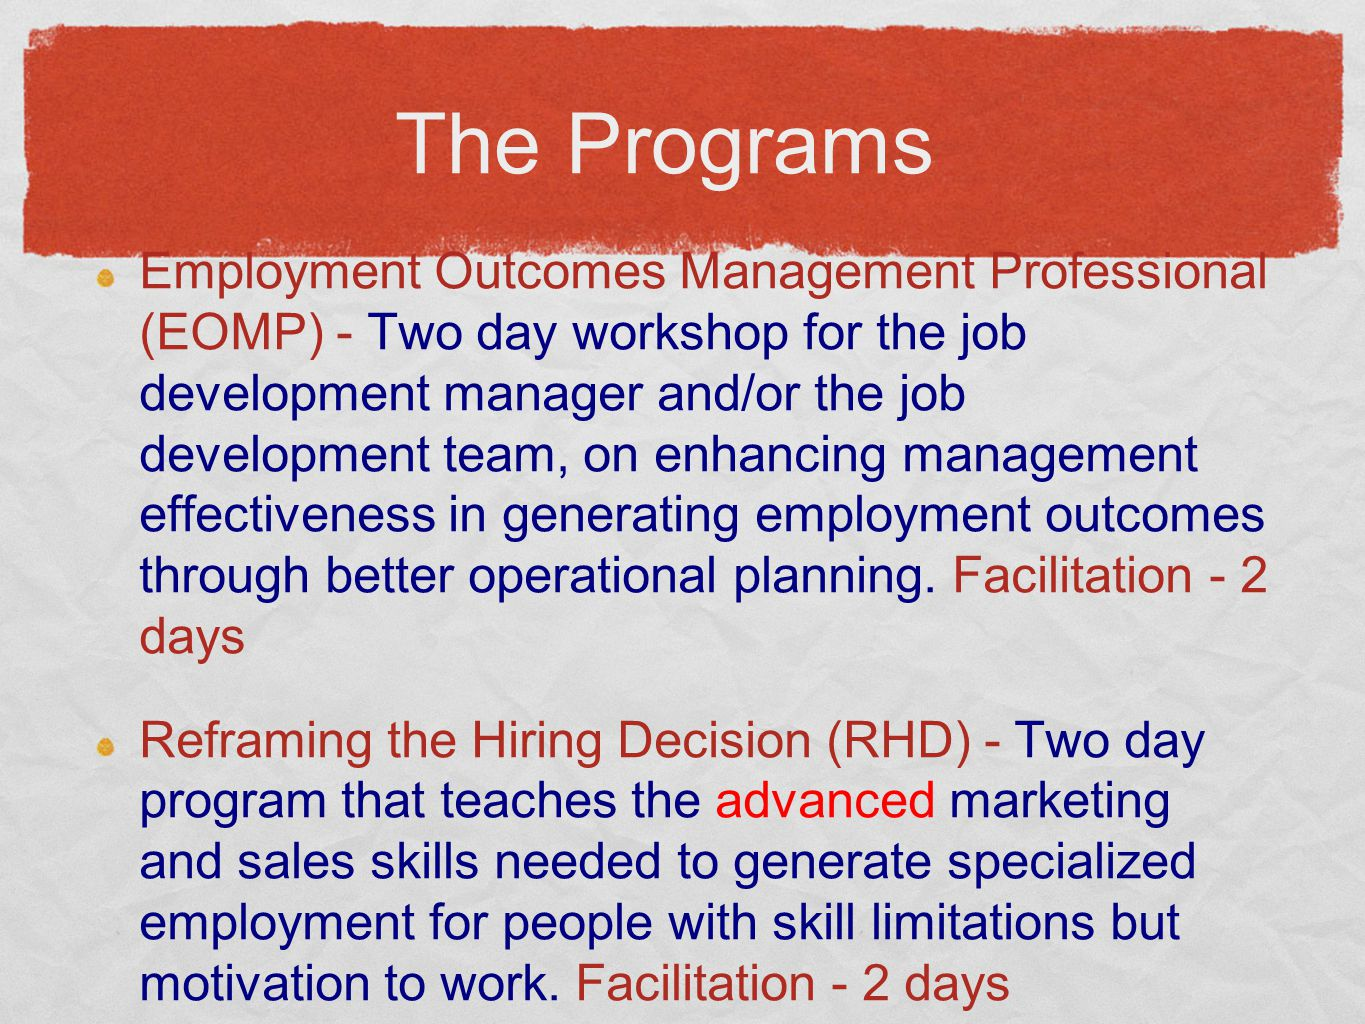 The Programs Employment Outcomes Management Professional (EOMP) - Two day workshop for the job development manager and/or the job development team, on